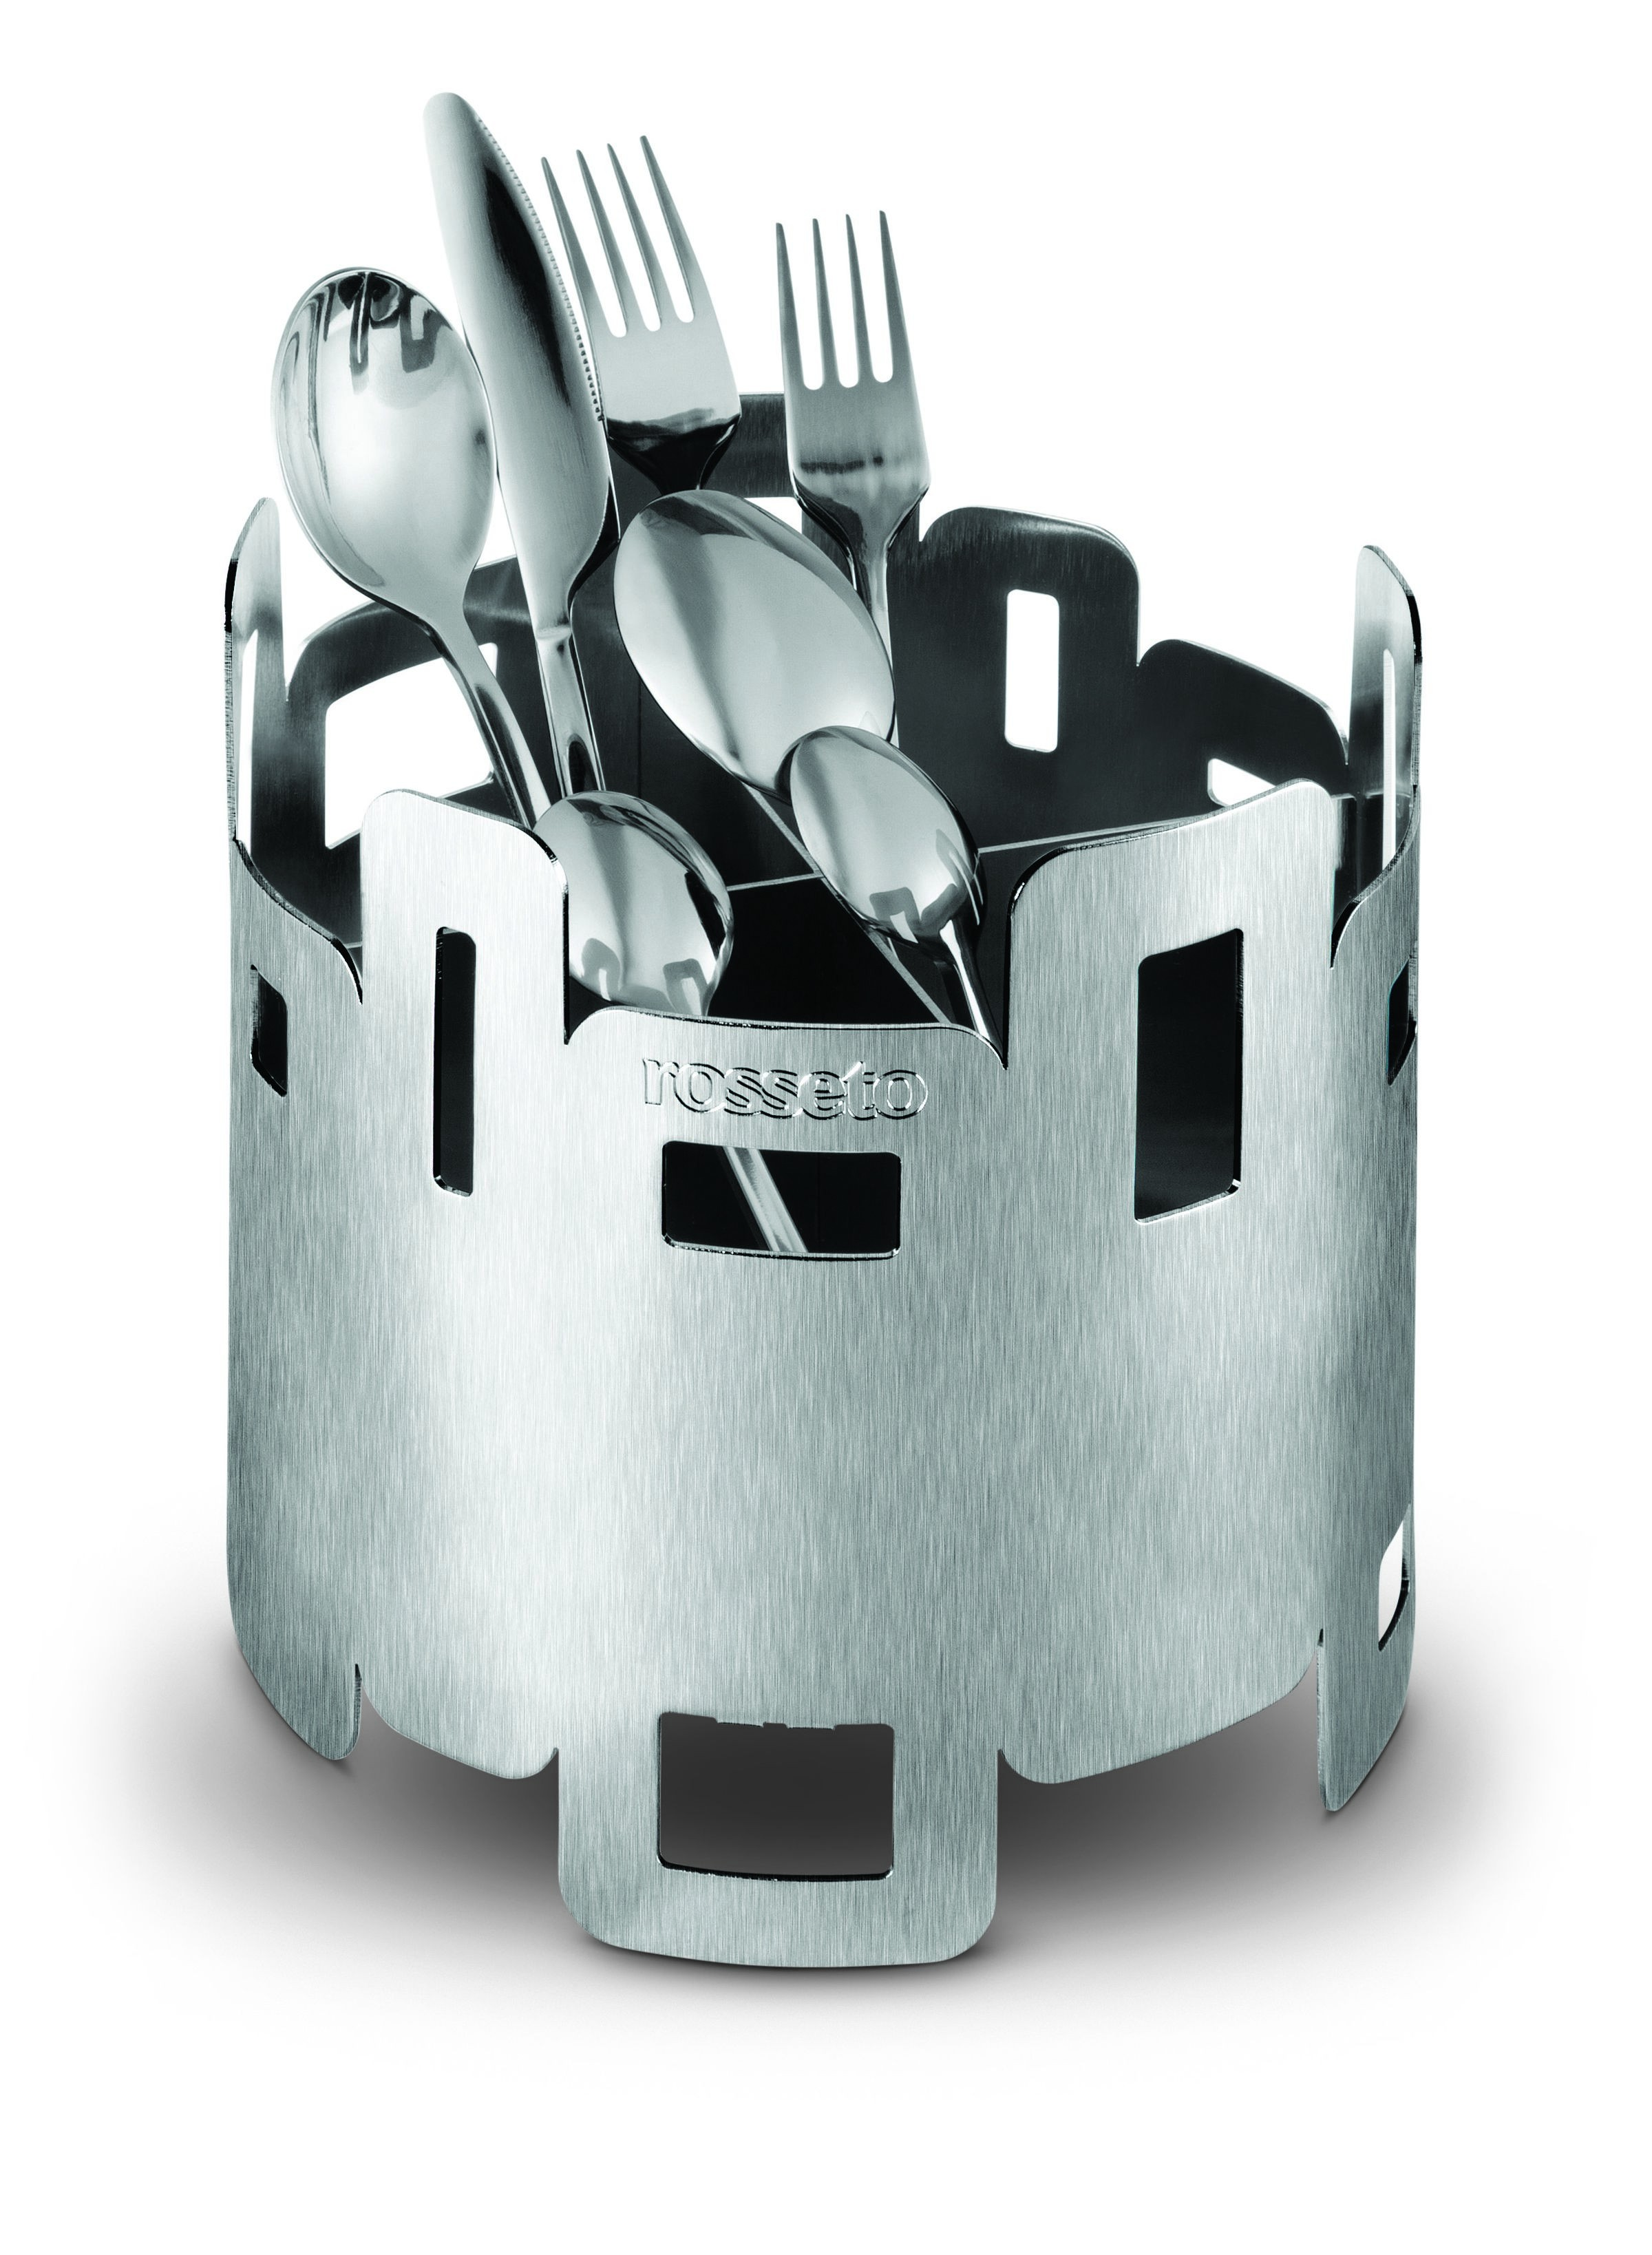 """Rosseto D42577 Stainless Steel 4 Compartment 7"""" Round Cutlery Sorter"""